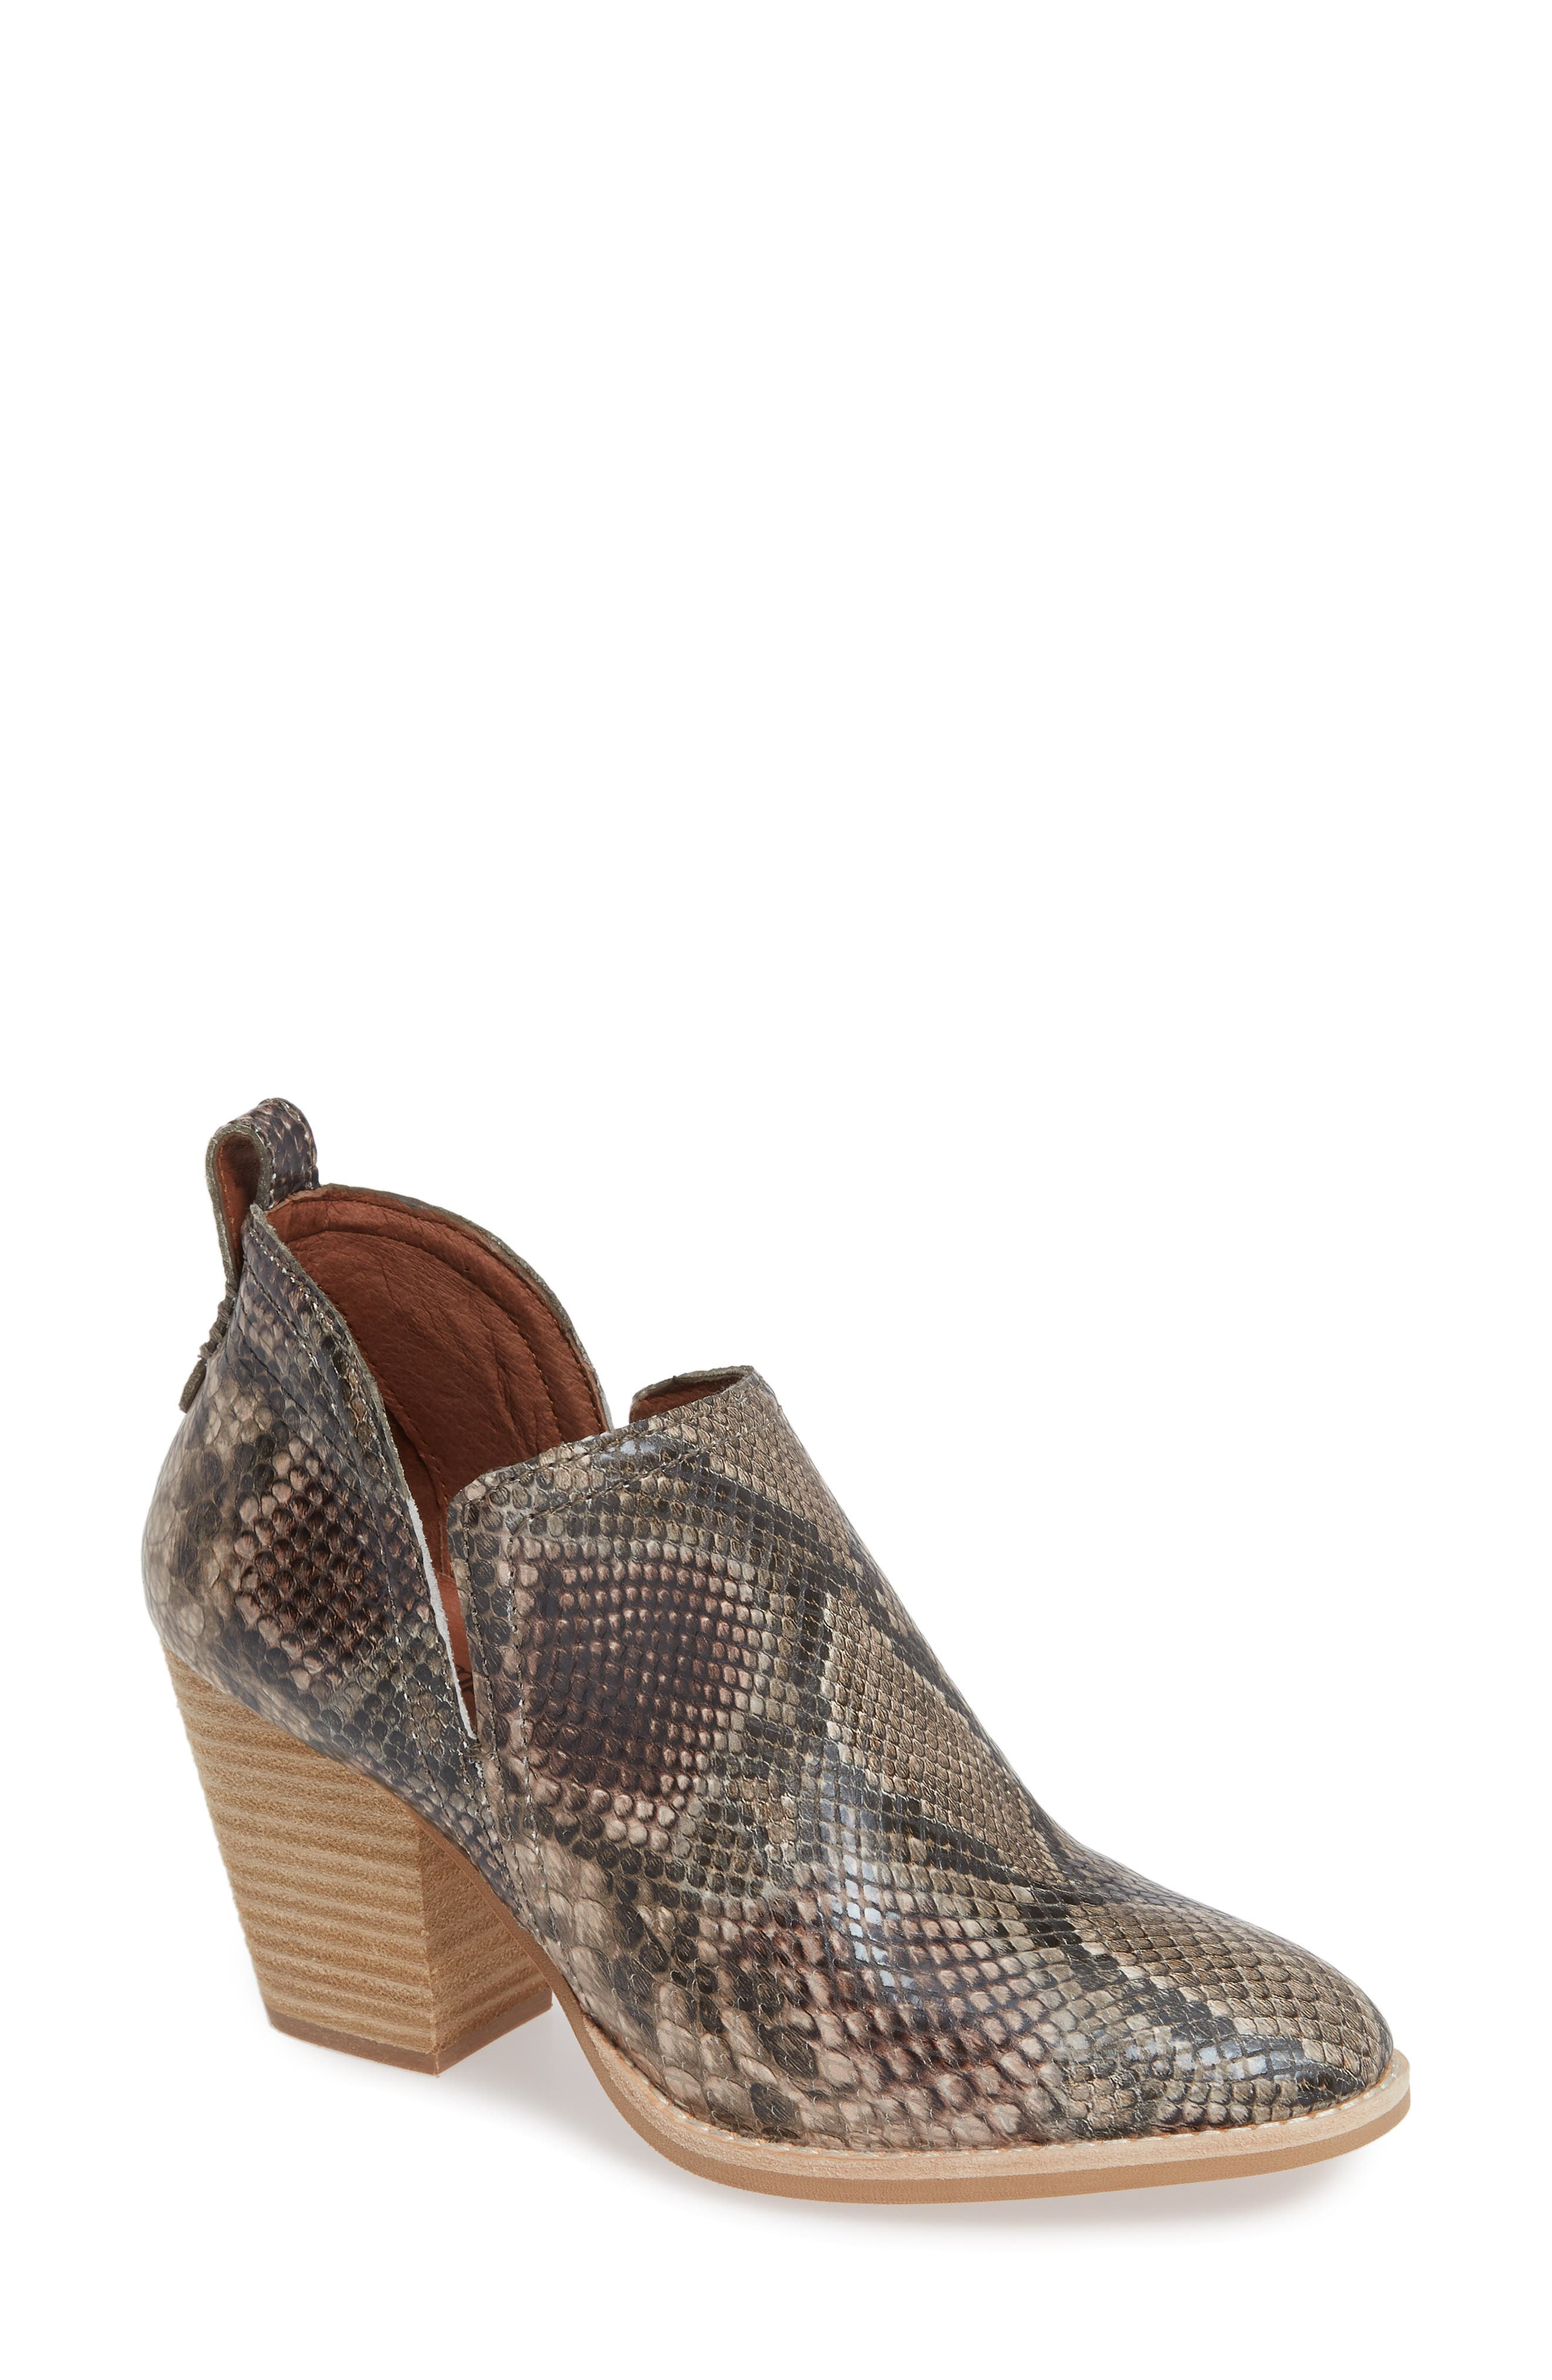 Rosalee Bootie,                             Main thumbnail 1, color,                             TAUPE SNAKE PRINT MULTI